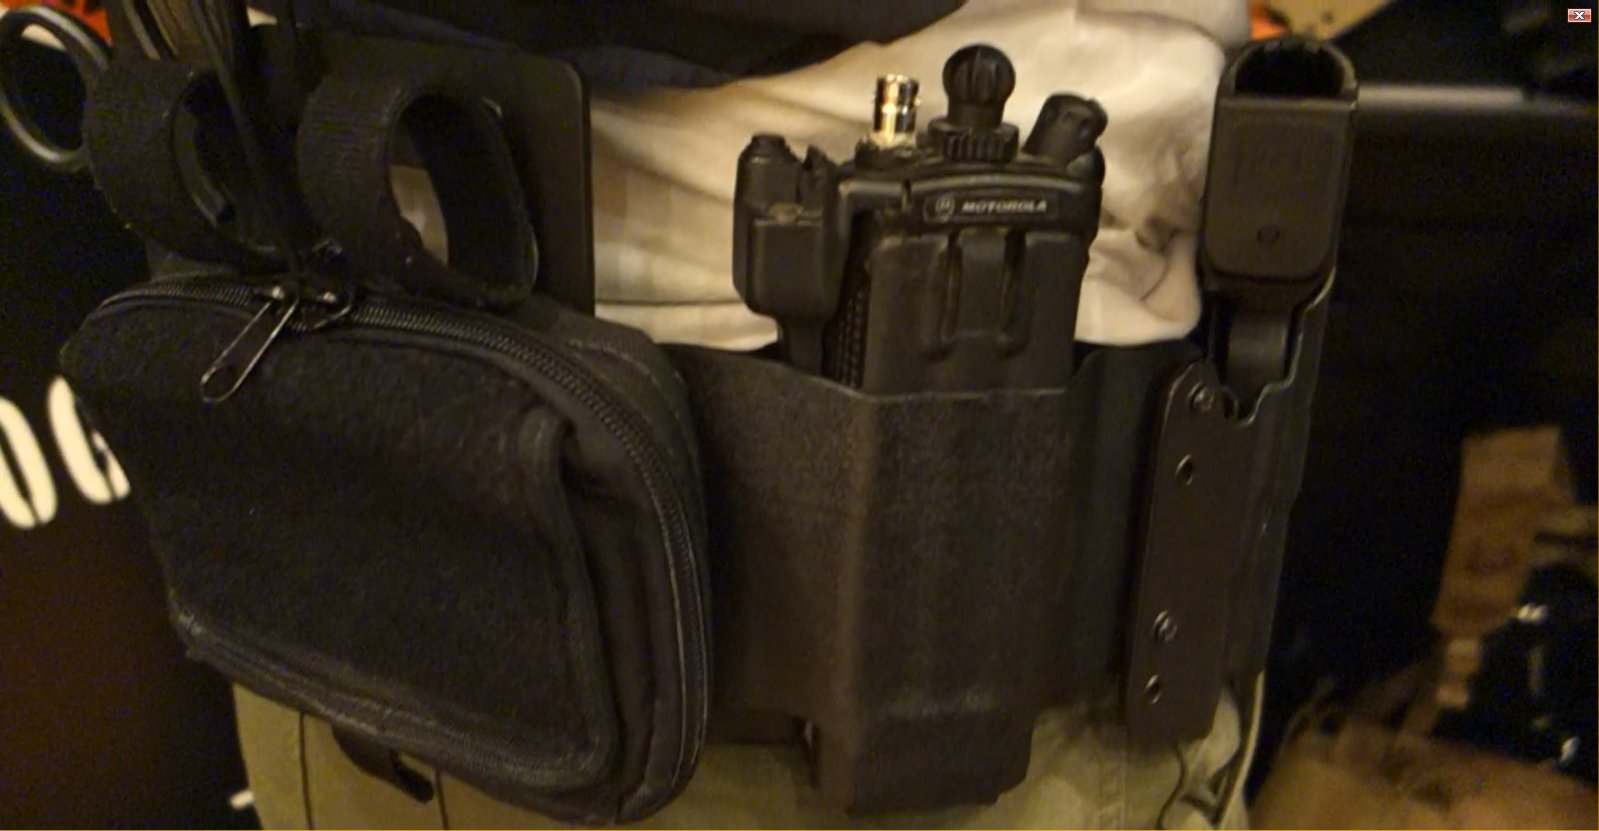 High Threat Concealment HTC Low Profile System LPS Modular Gunfighting Belt Carrier System Tactical Gun Belt David Crane DefenseReview.com DR 2 High Threat Concealment HTC Low Profile System (LPS) Modular Gunfighting Belt/Carrier System for Lo Pro/Lo Vis Tactical Ops! (Video!)